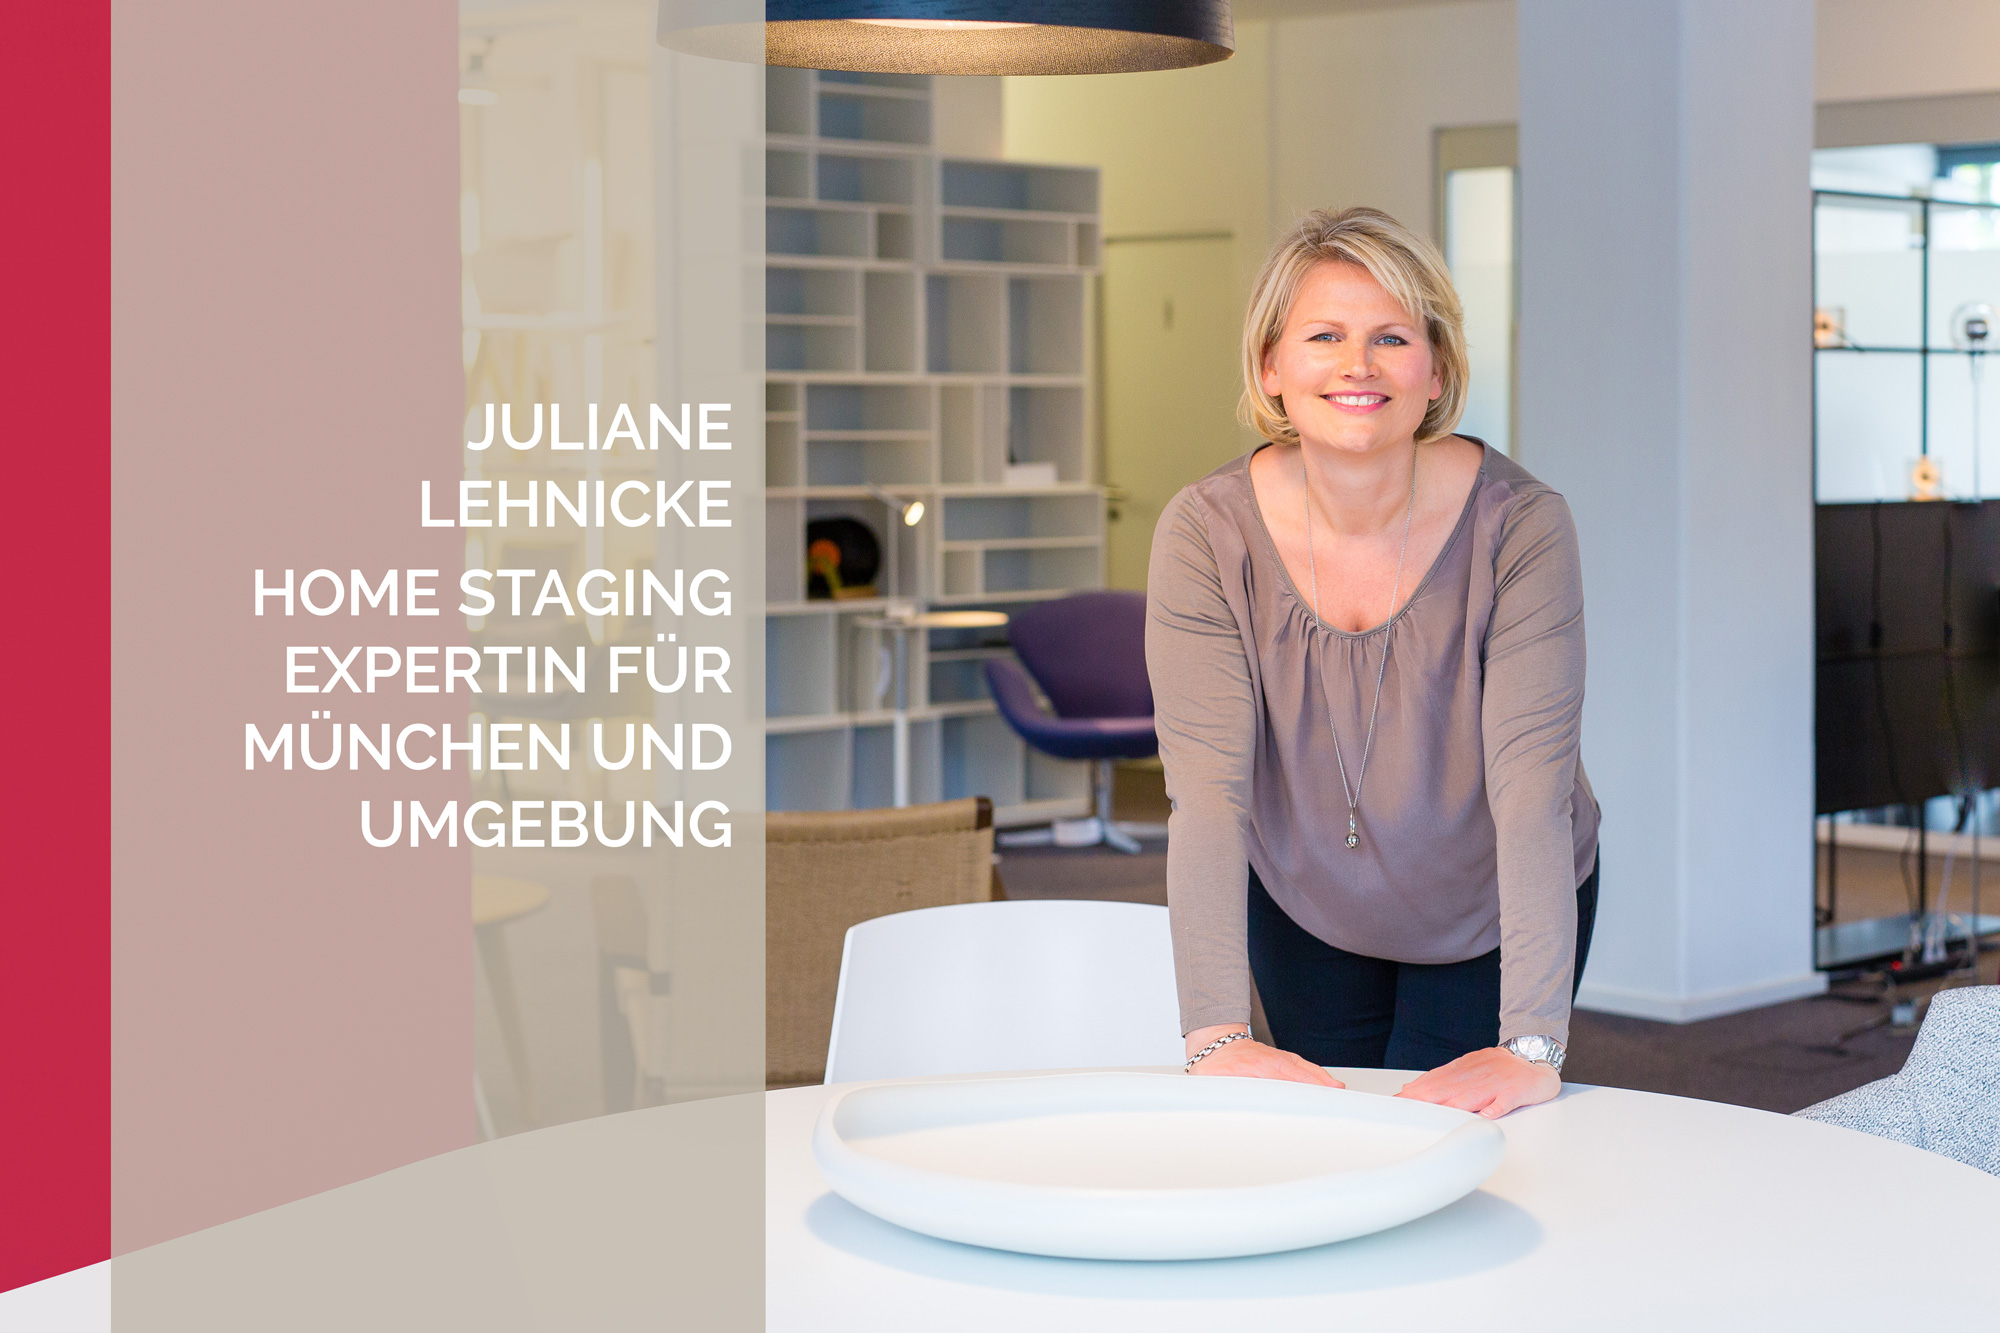 Muenchner Home Staging Agentur – Juliane Lehnicke